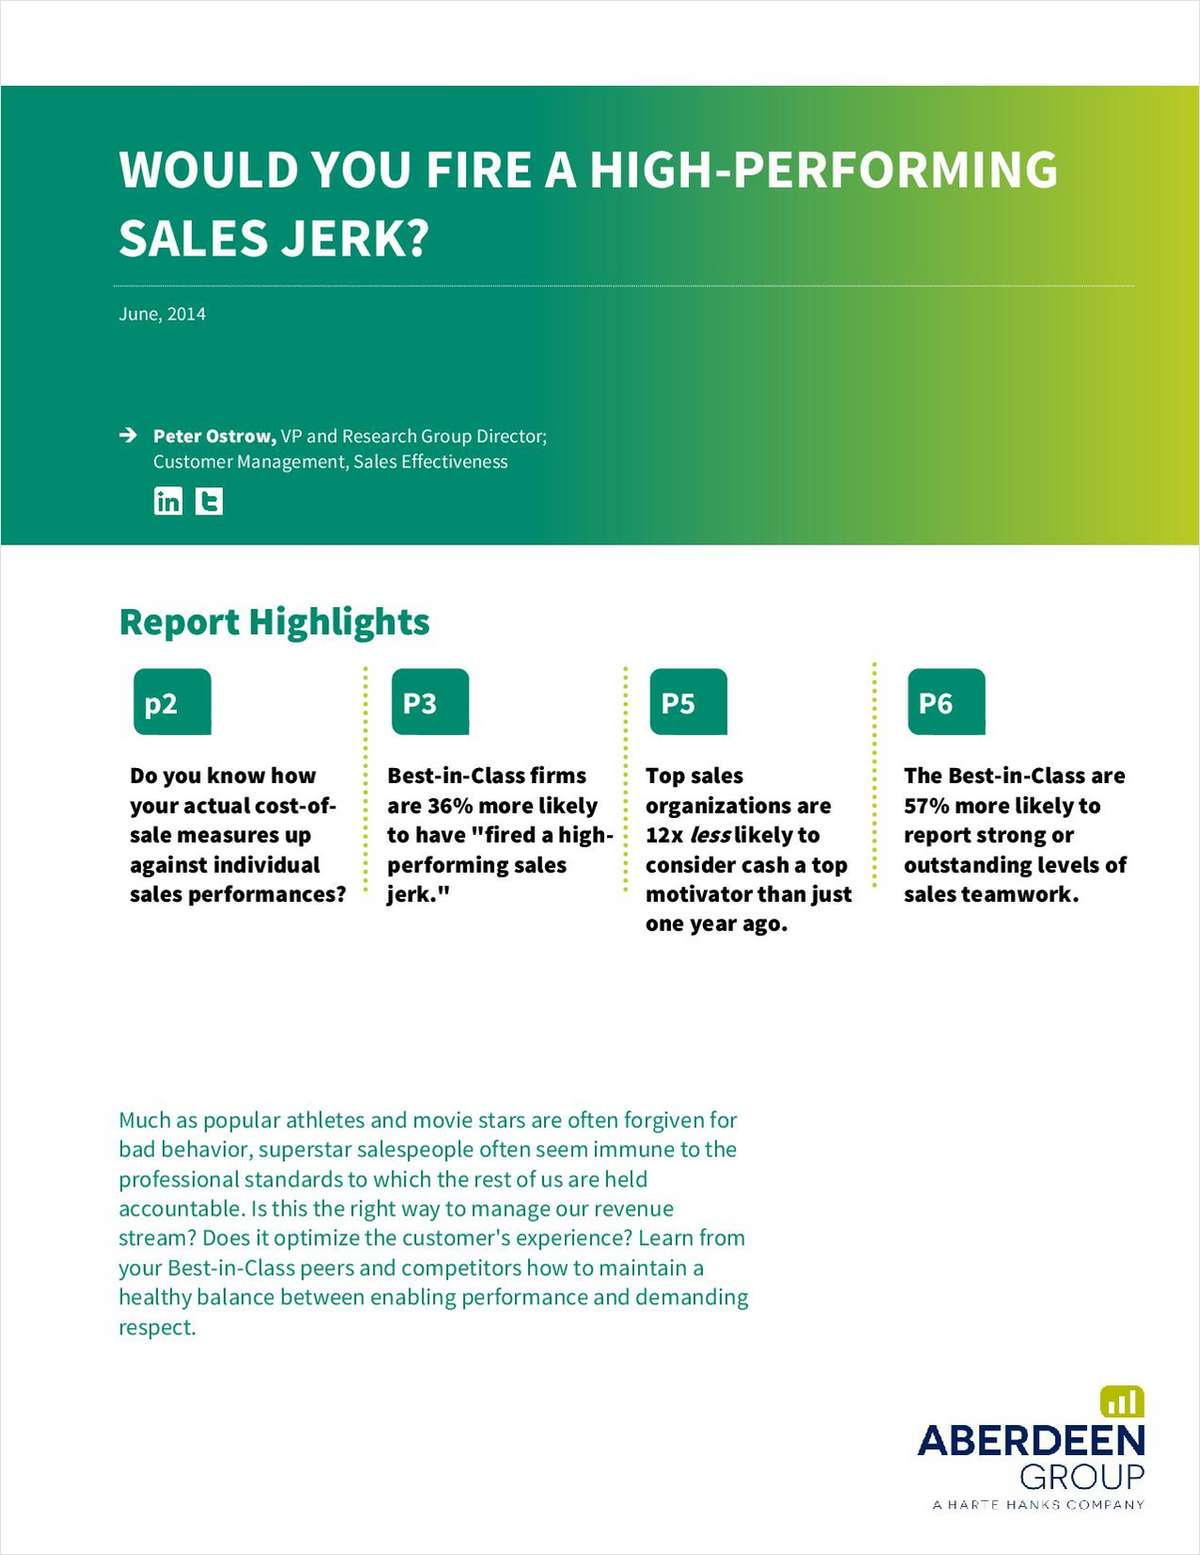 Would You Fire a High-Performing Sales Jerk?